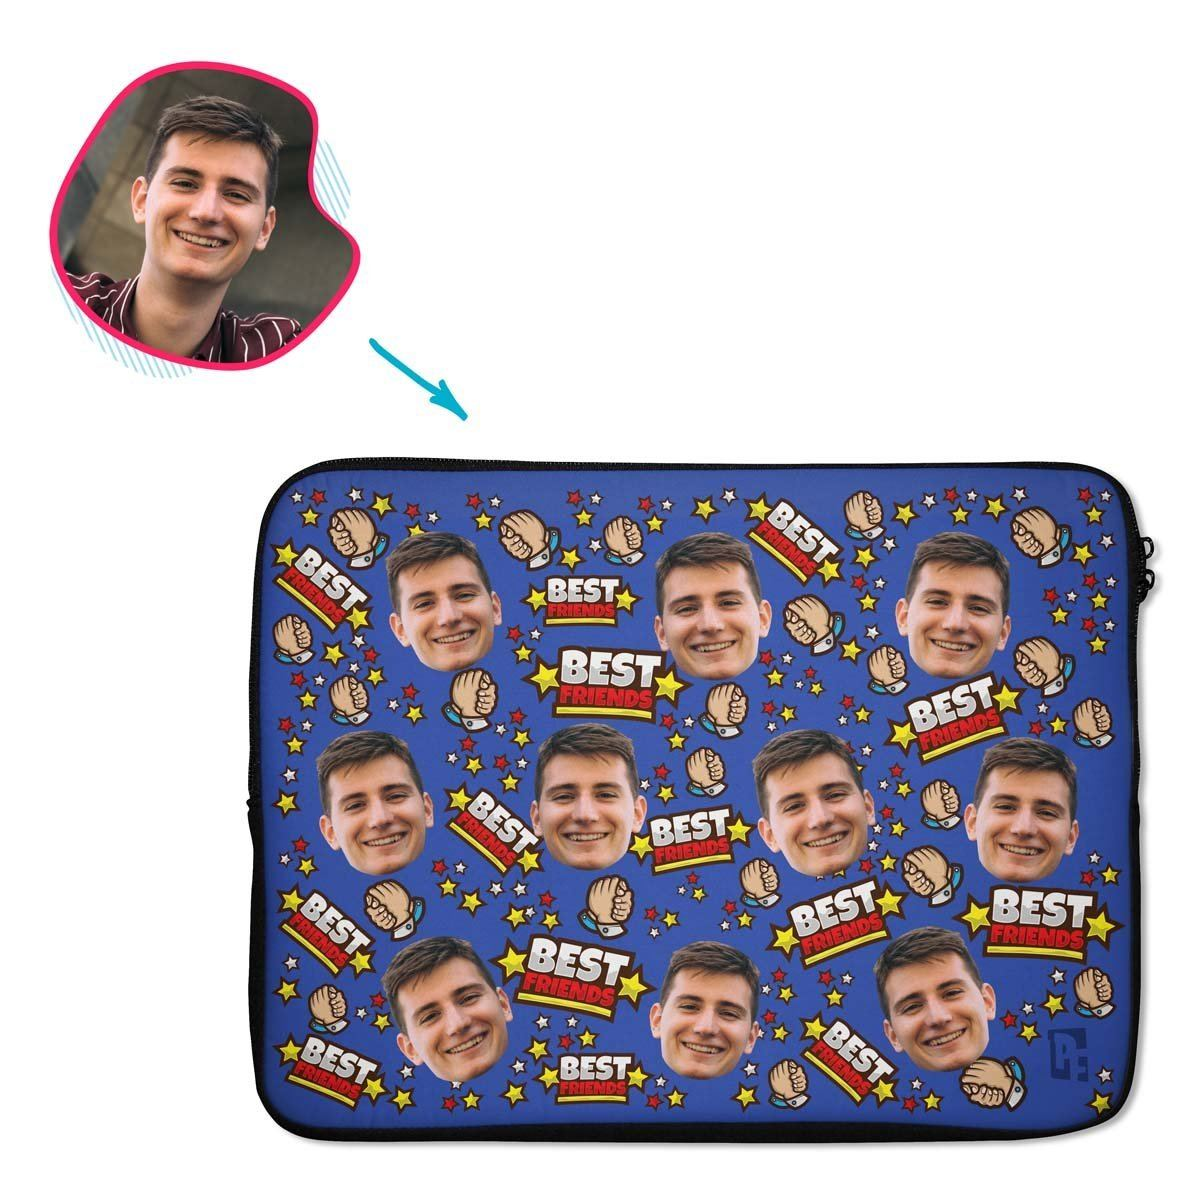 darkblue Best Friends laptop sleeve personalized with photo of face printed on them